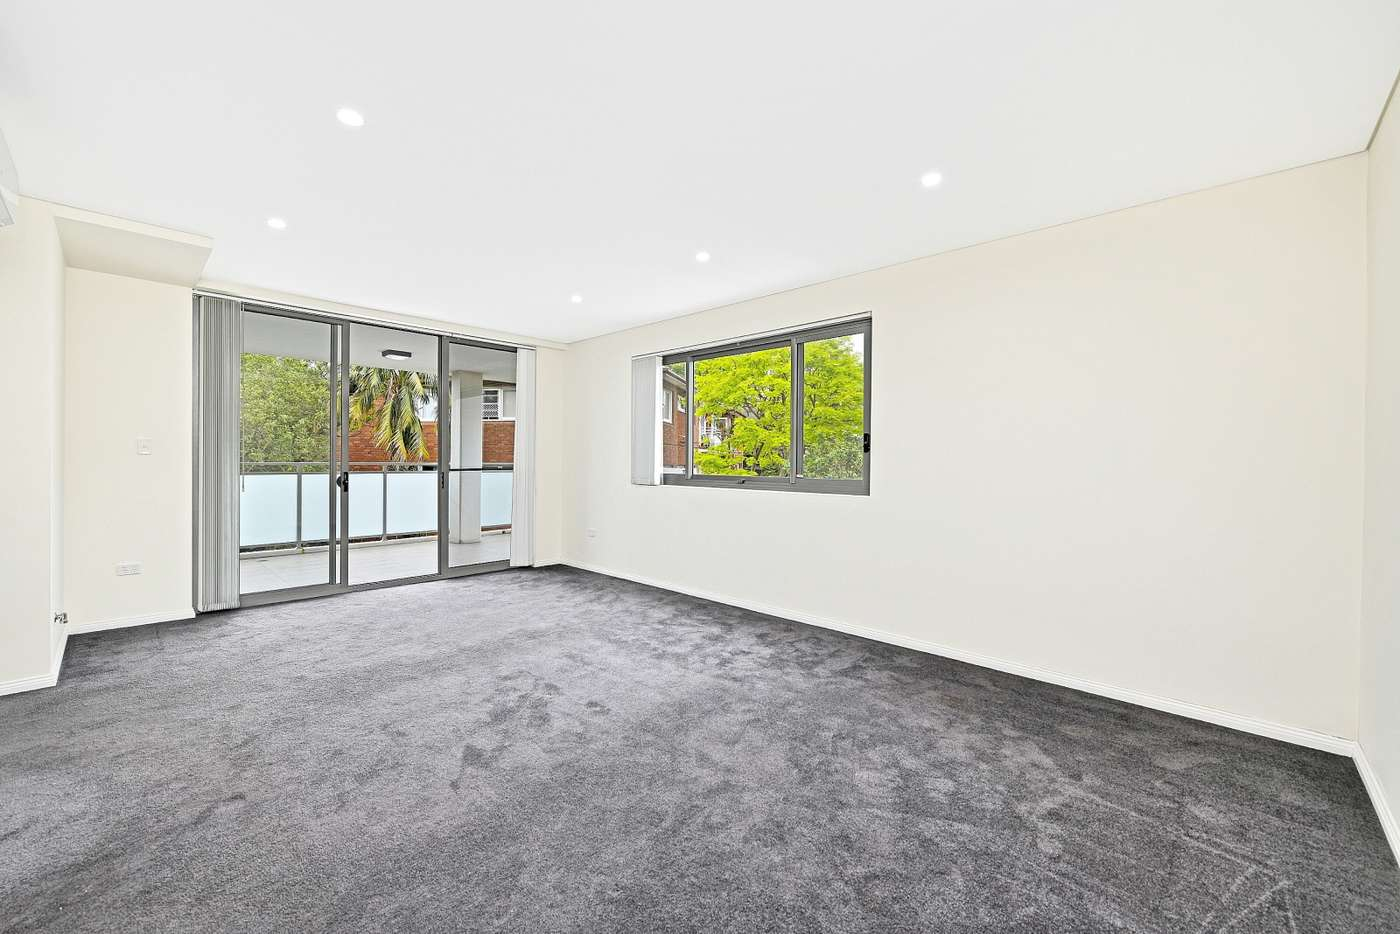 Main view of Homely apartment listing, 6/3 Stanley St, Arncliffe NSW 2205